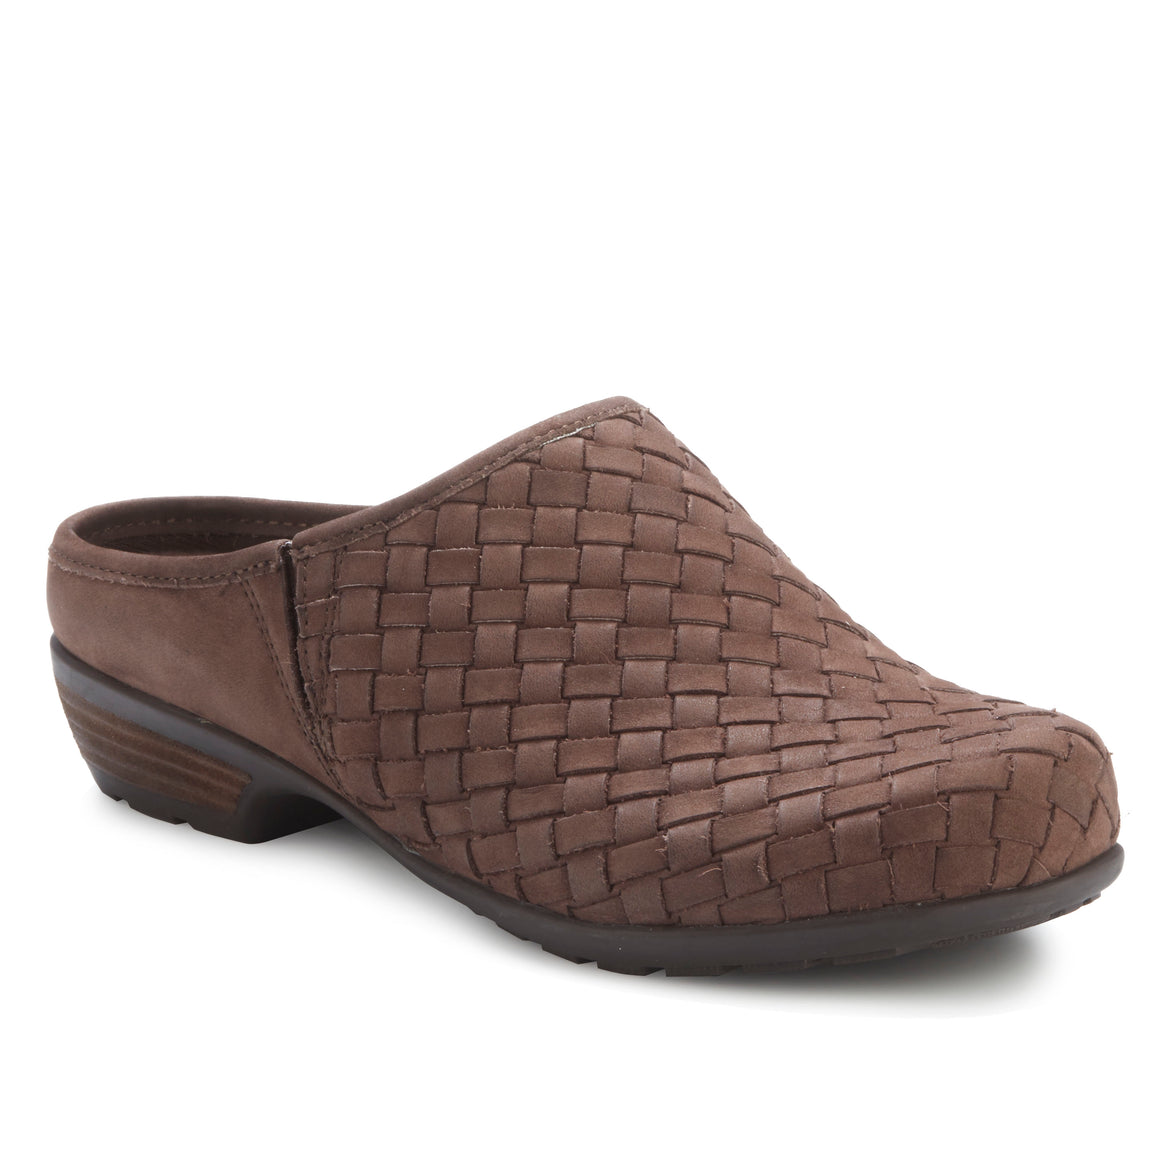 Emerson: Brown Woven Leather NEW